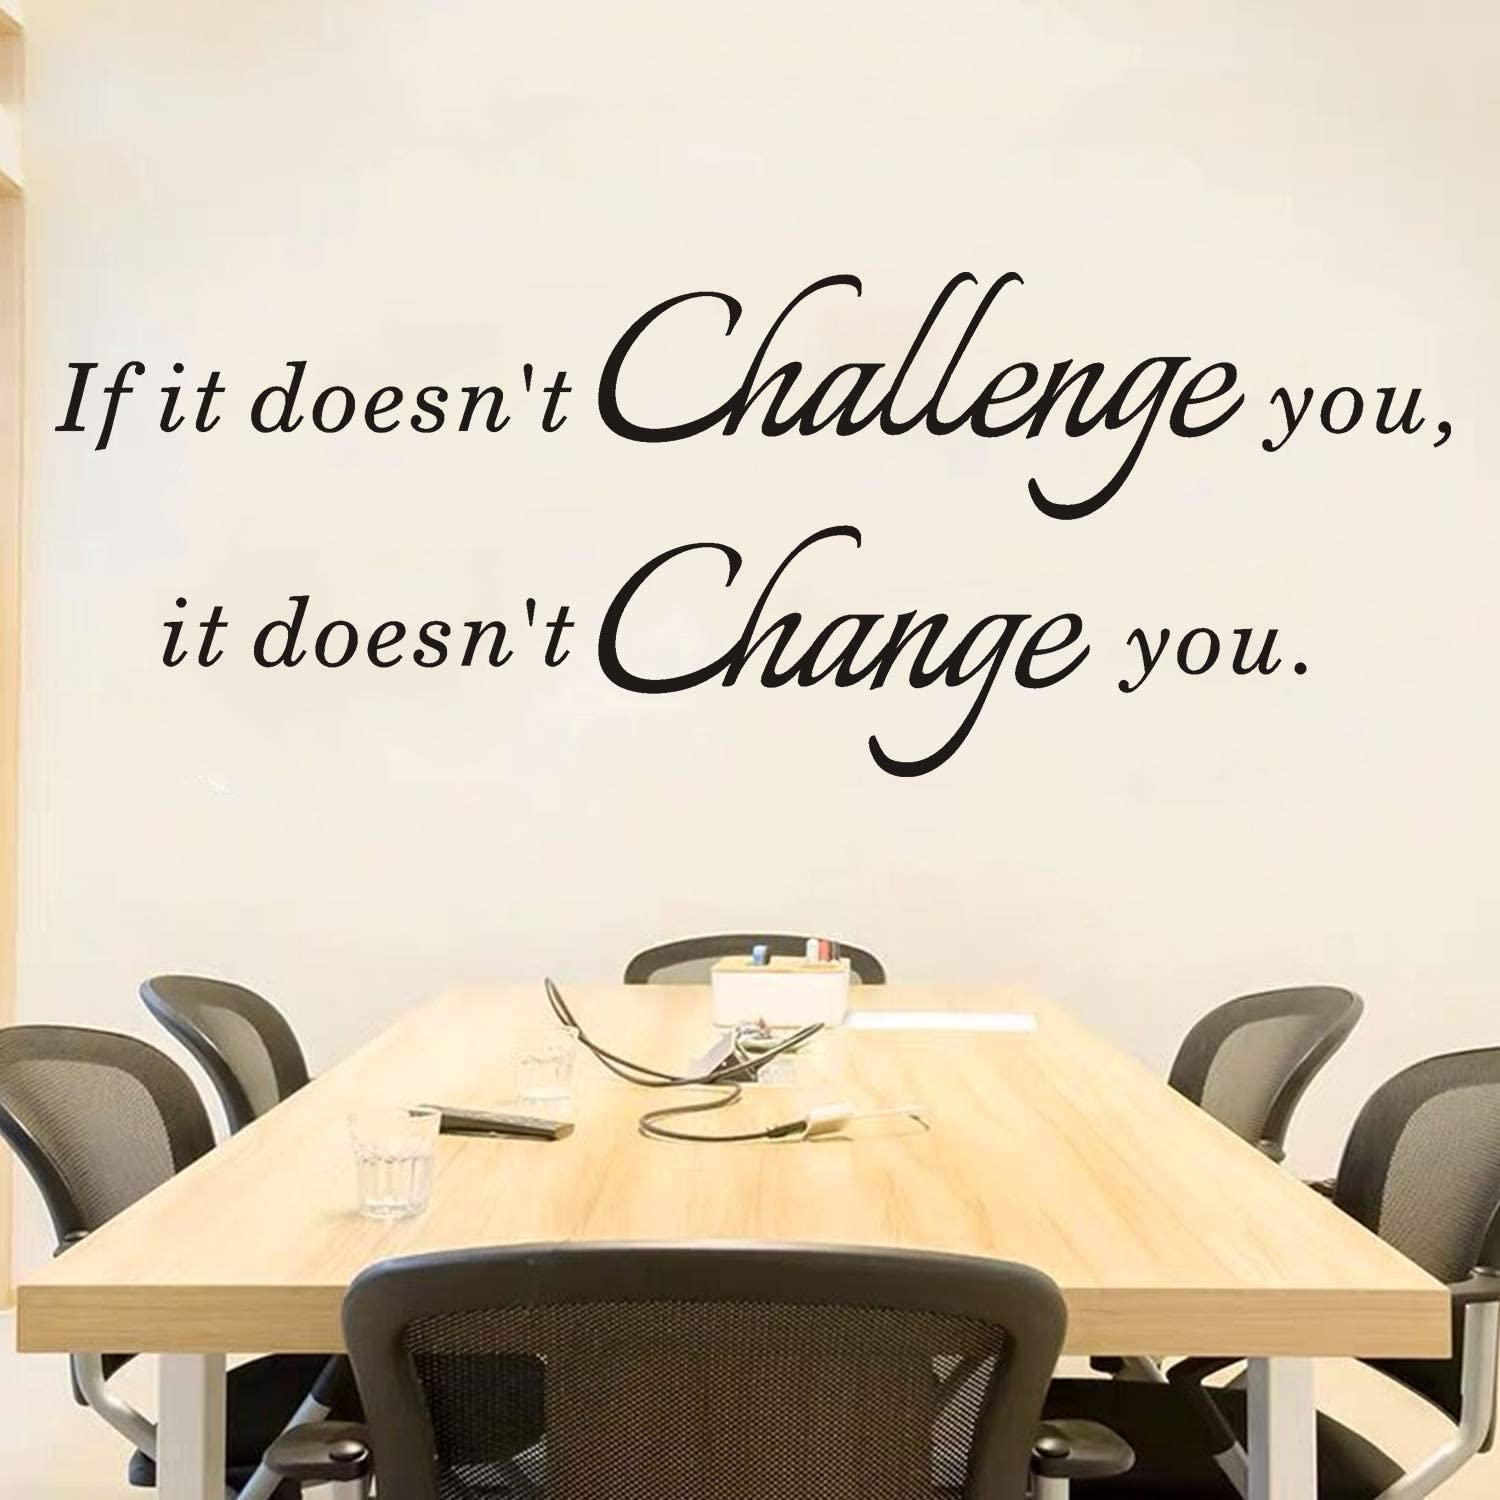 """AnFigure Inspirational Wall Decals, Gym Wall Decal, Motivational Quote Classroom School Office Dorm Fitness Home Art Decor Vinyl Stickers If it Doesn't Challenge You it Doesn't Change You 35.1""""x13"""""""